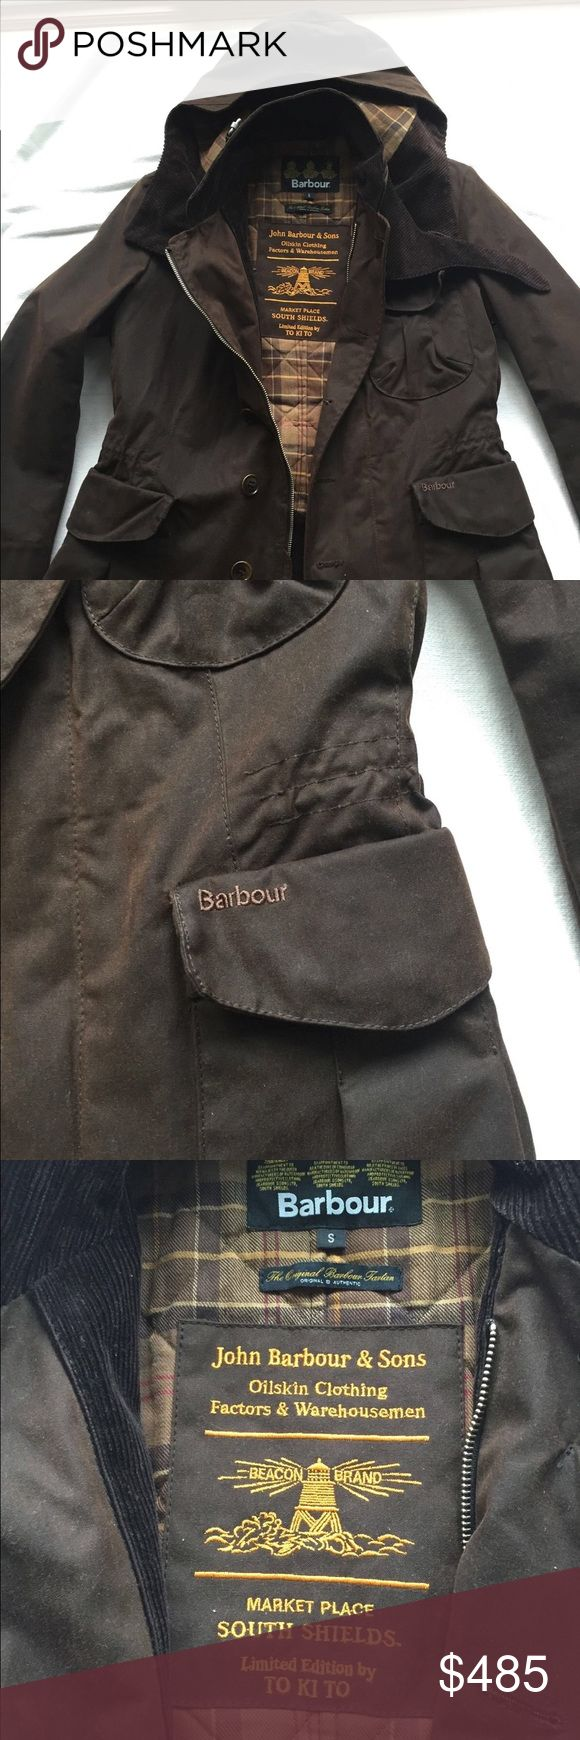 Barbour Men's Waxed Jacket Limited Edition Used twice only for a short time like New, Dark brown waxed cotton,Removable zip hood,Size small.Limited Edition By TO KI TO Barbour Jackets & Coats Performance Jackets